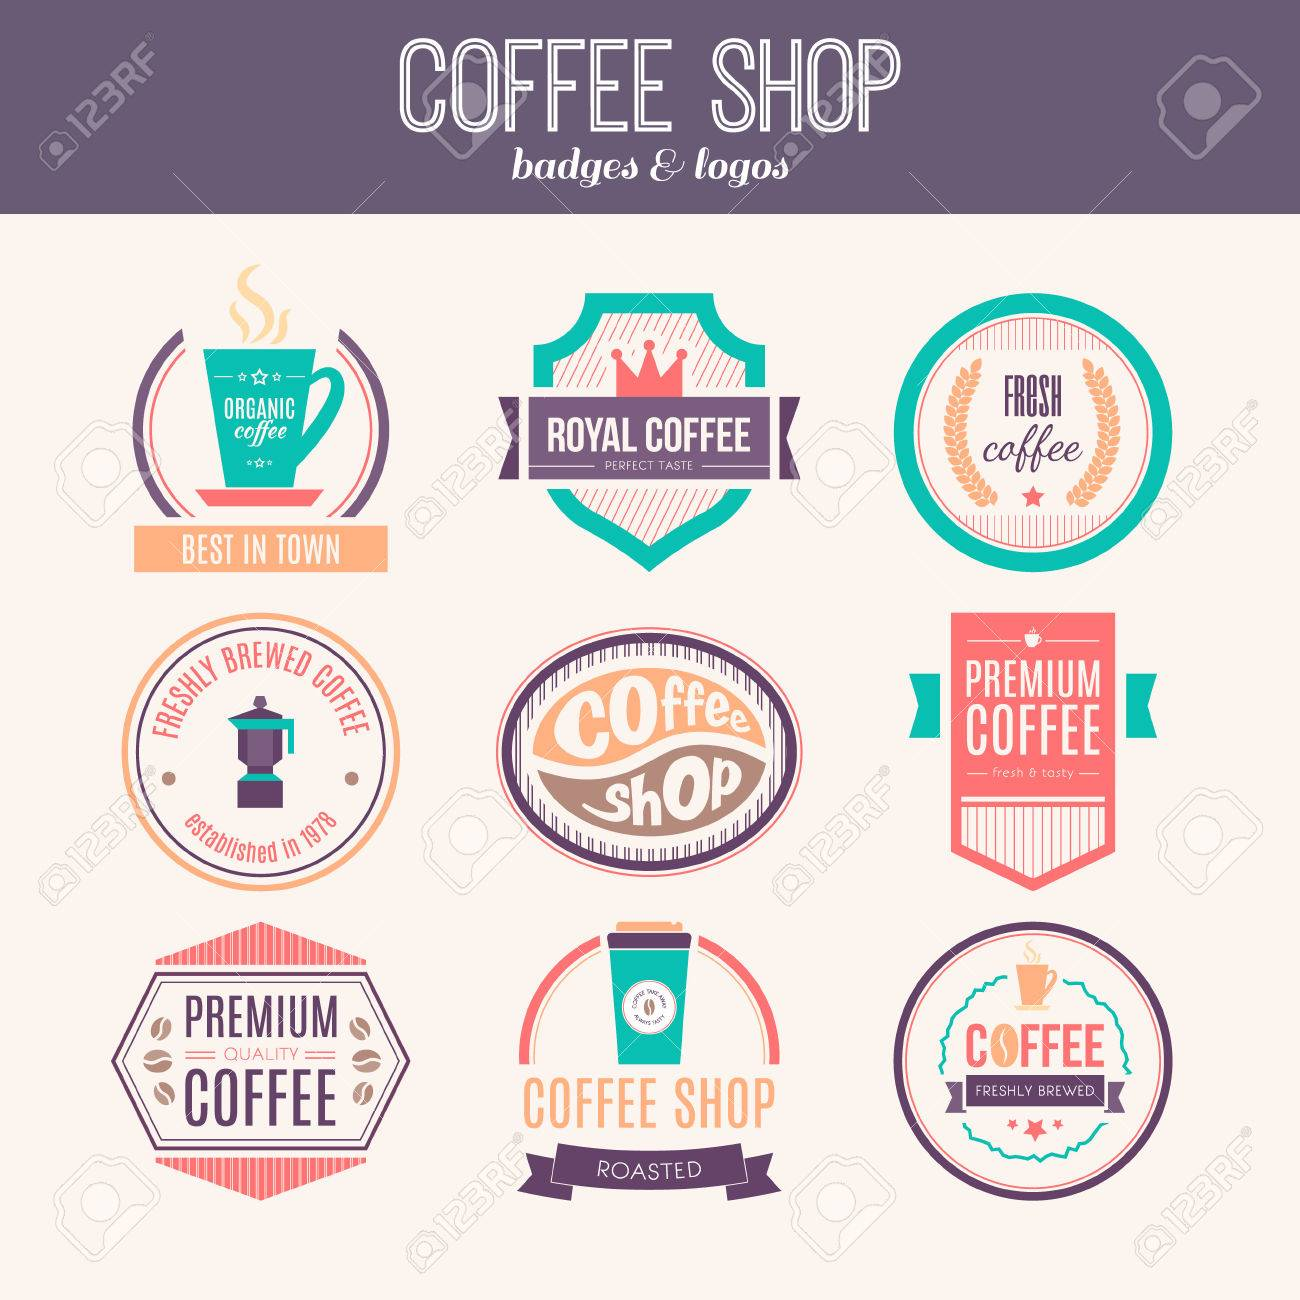 Vector Set Of Coffee Shop Restaurant Or Bar Design Elements Royalty Free Cliparts Vectors And Stock Illustration Image 35270337